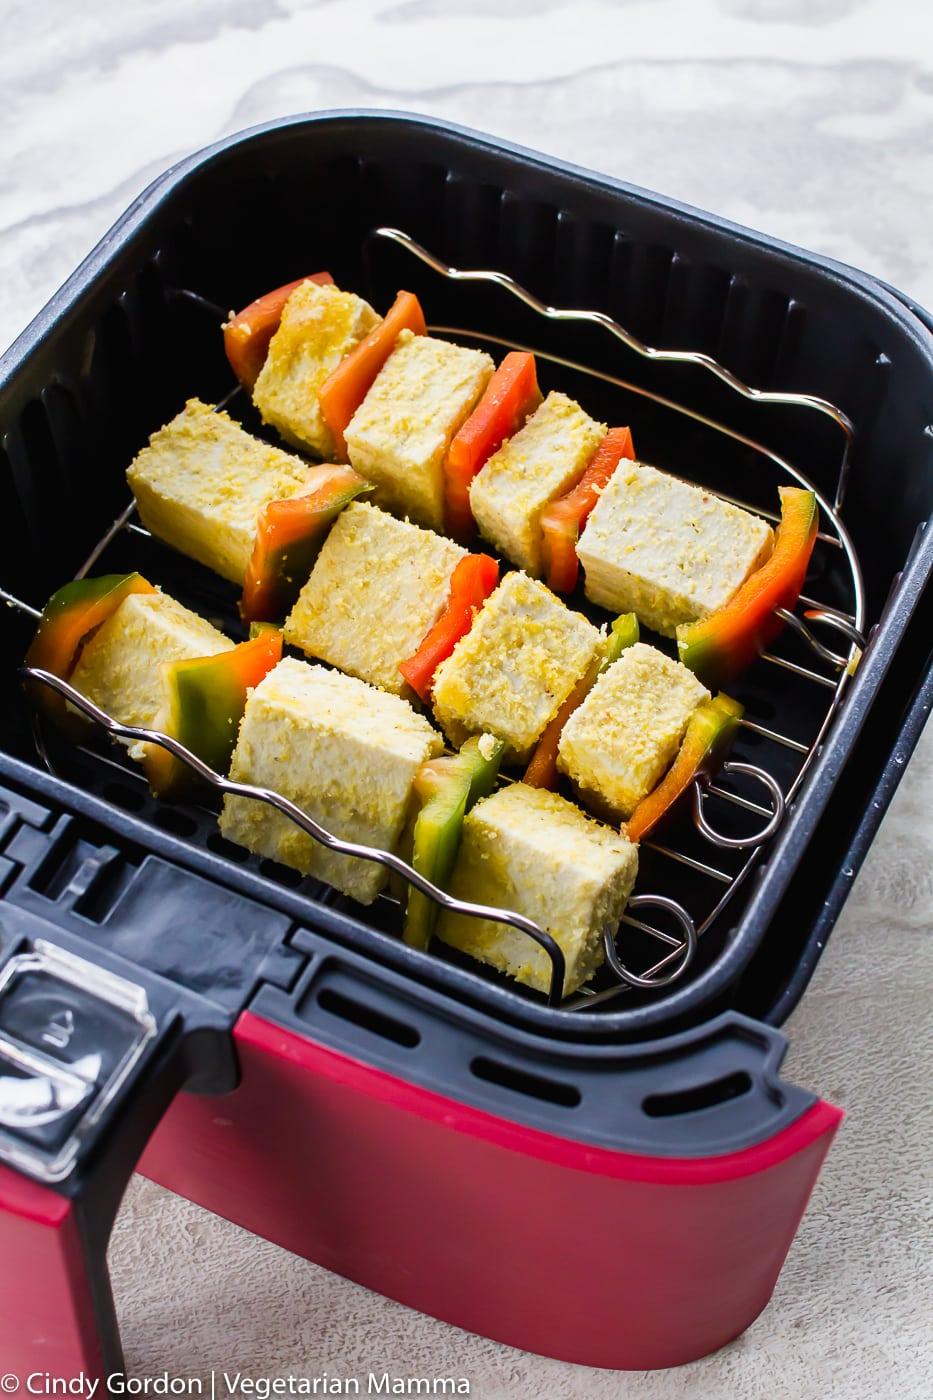 Tofu Skewers in the air fryer